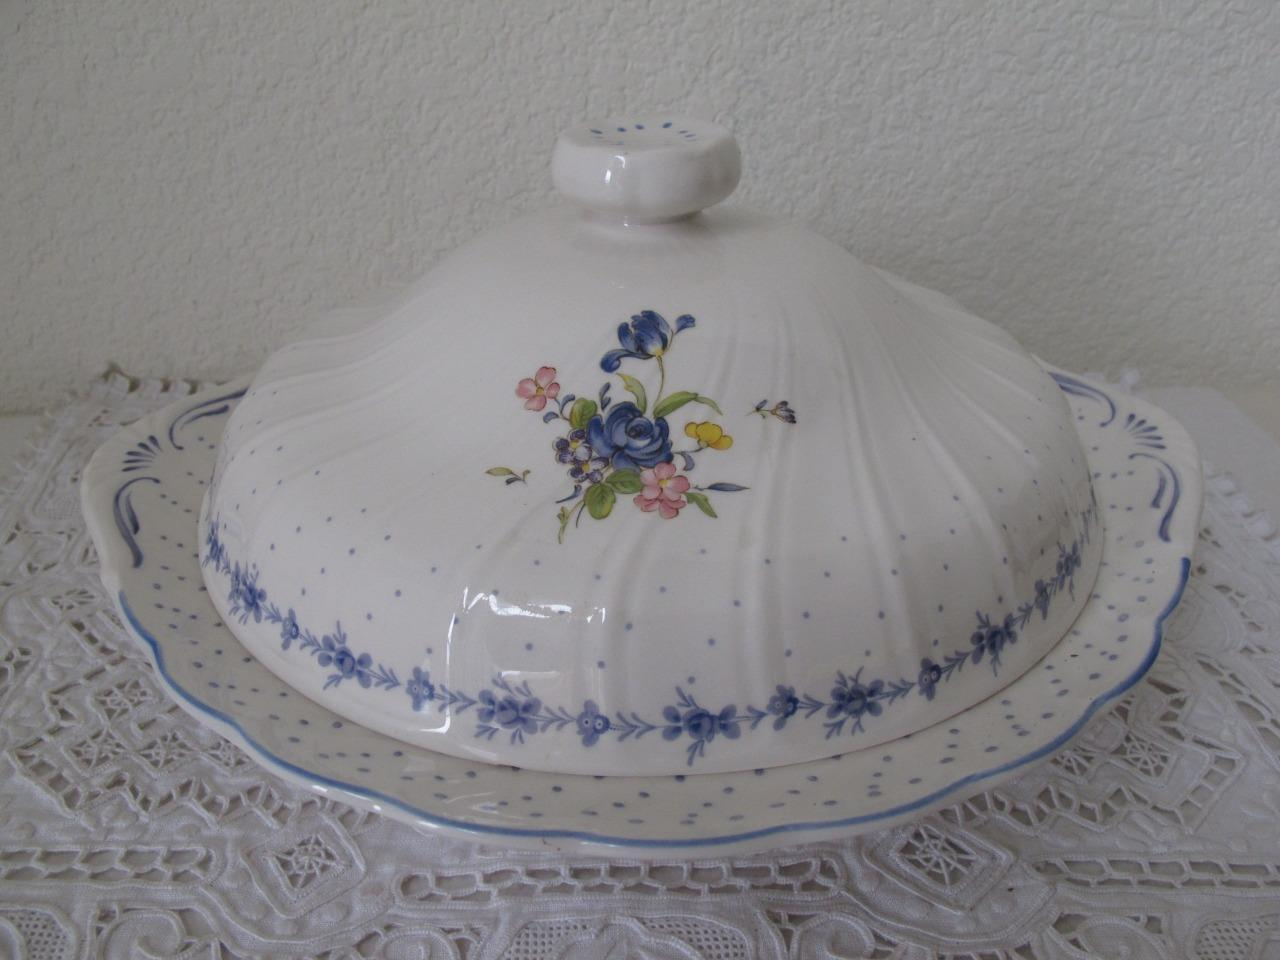 Nikko Blue Peony Round Covered Vegetable Serving Dish Bowl Japan 11 1/4  & Nikko Blue Peony Round Covered Vegetable and 13 similar items